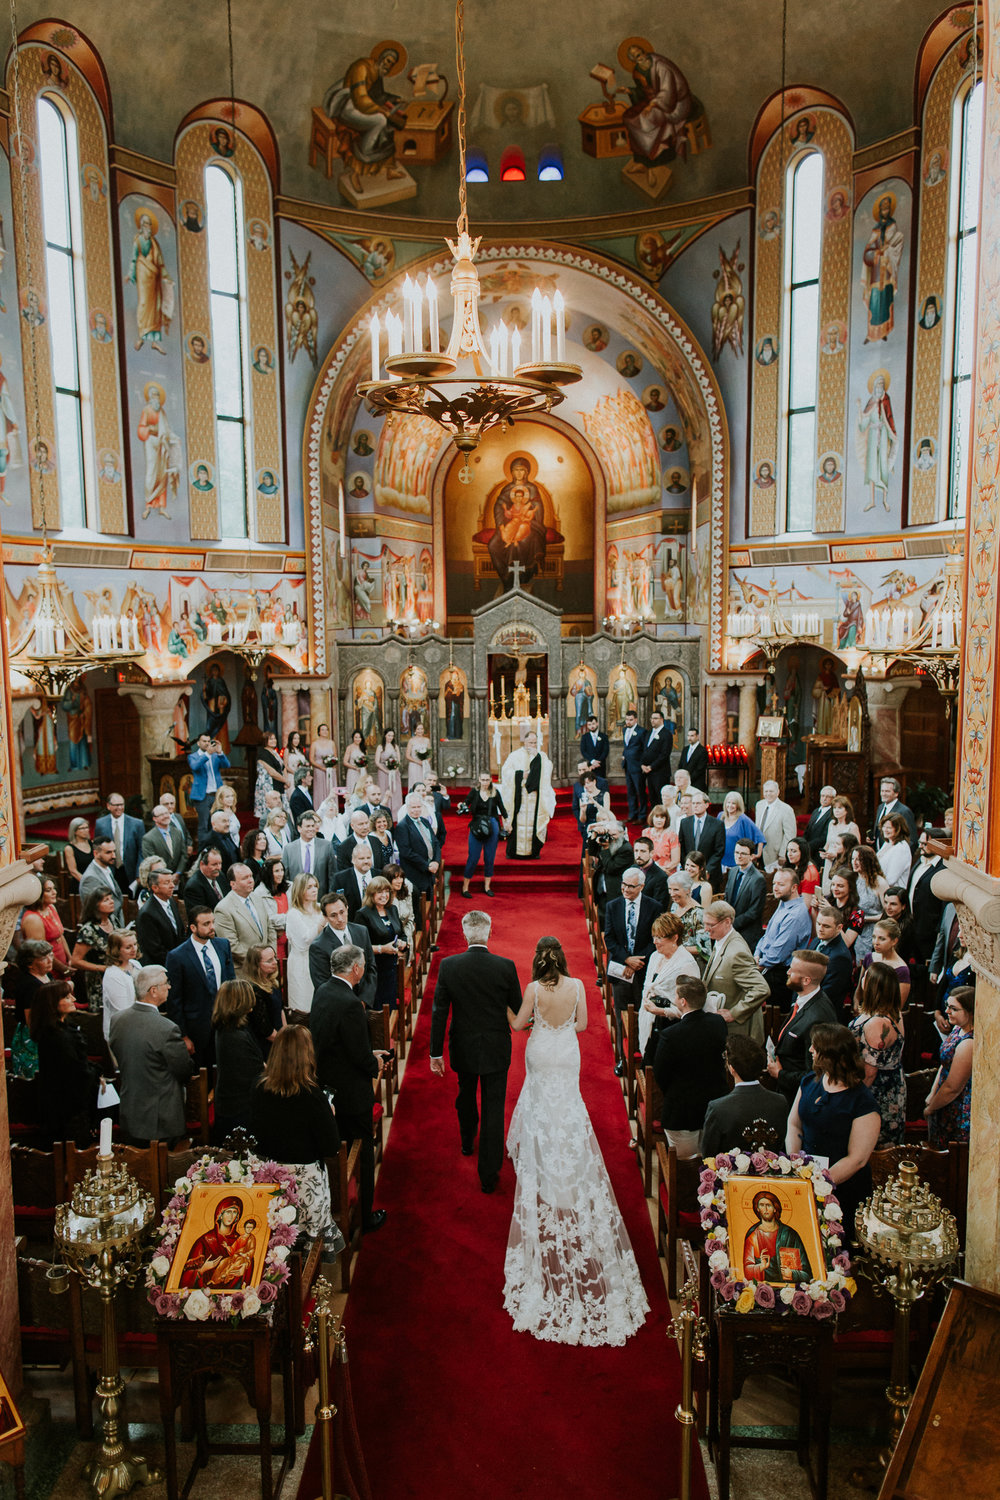 New-York-Documentary-Wedding-Photography-Best-Of-2017-by-Elvira-Kalviste-Photography-96.jpg